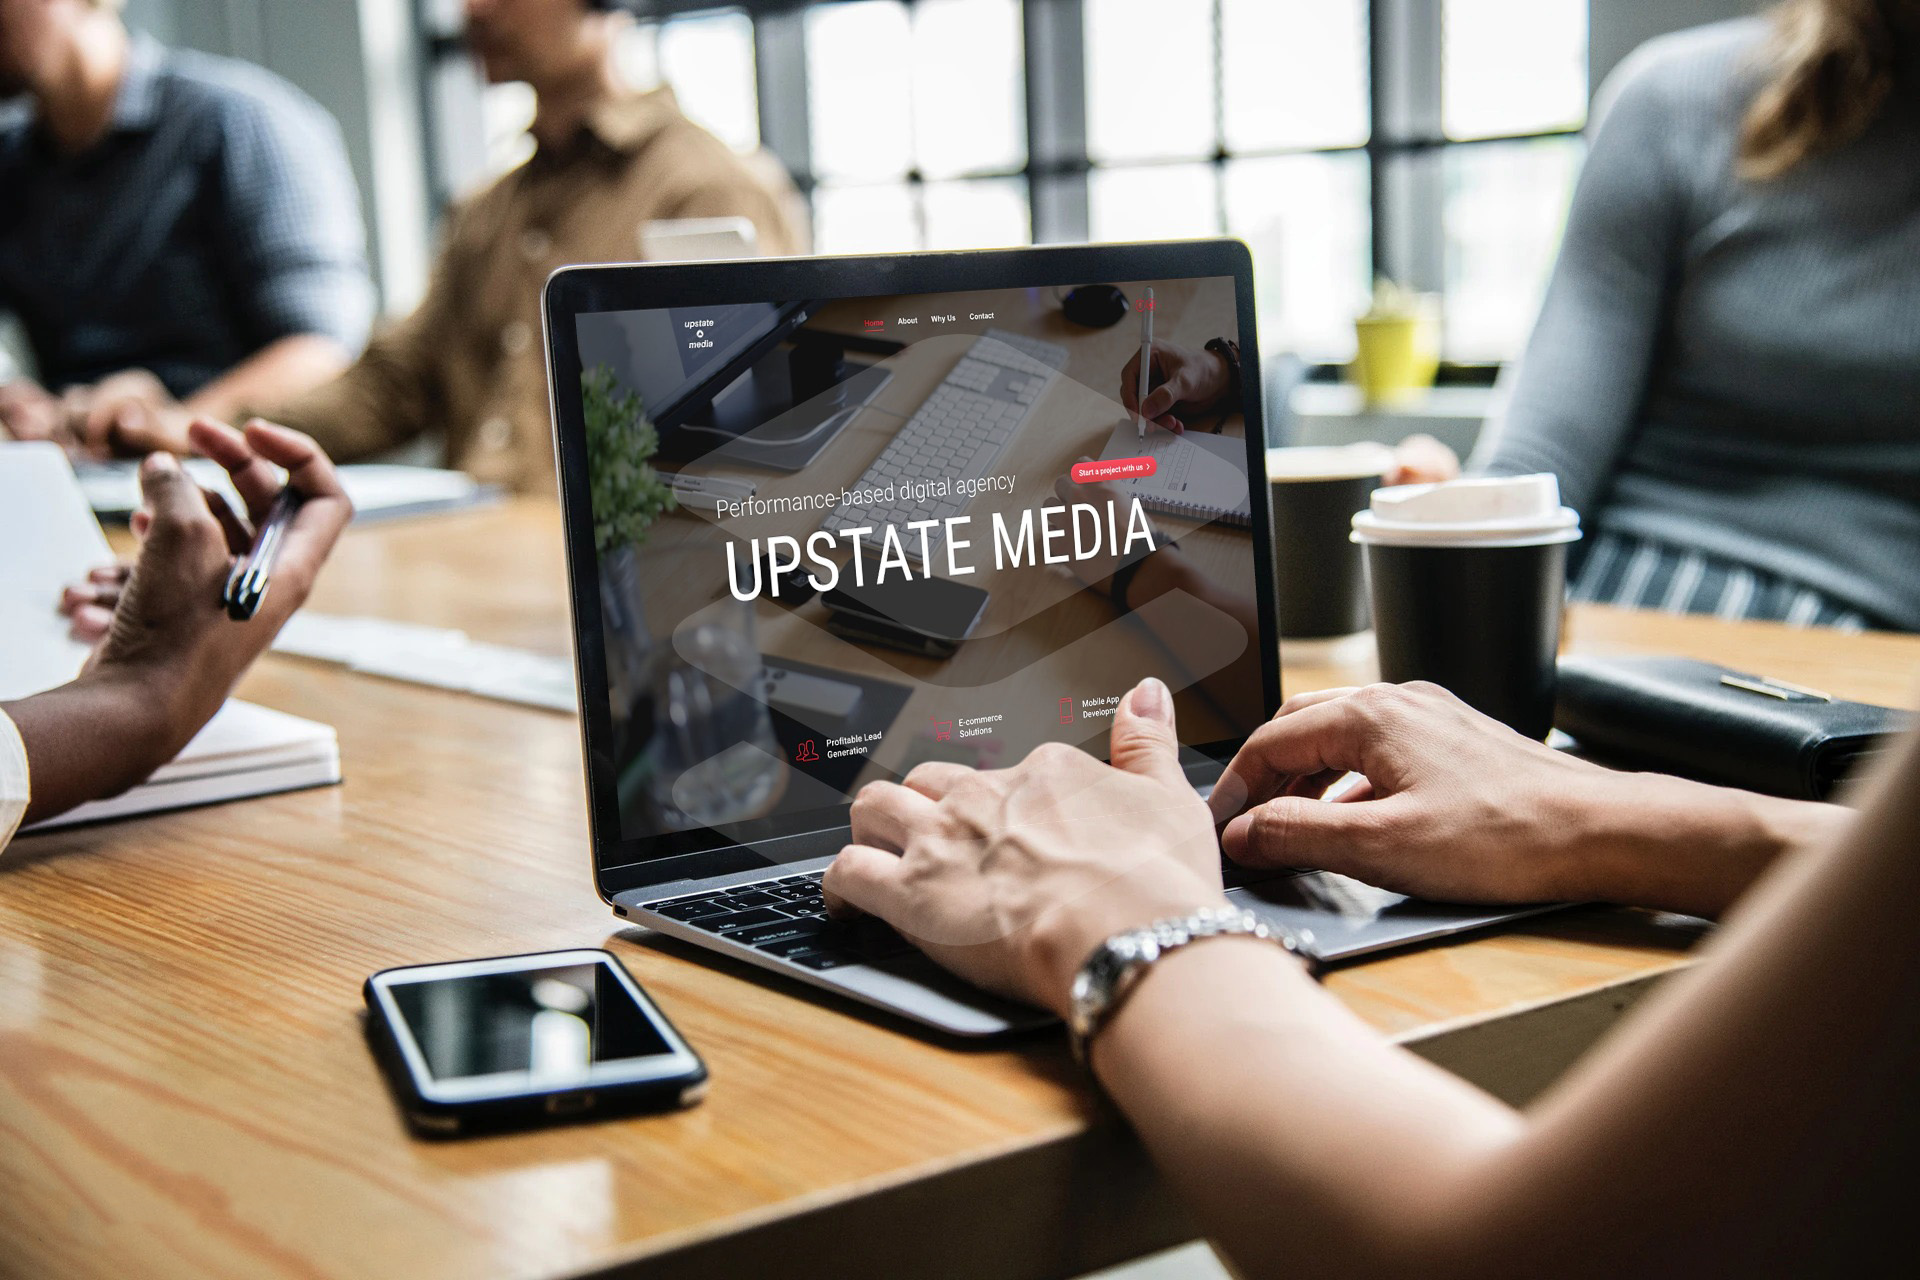 Upstate Media Inc. Is Turning More Visitors Into Buyers By Improving The Conversion Rate